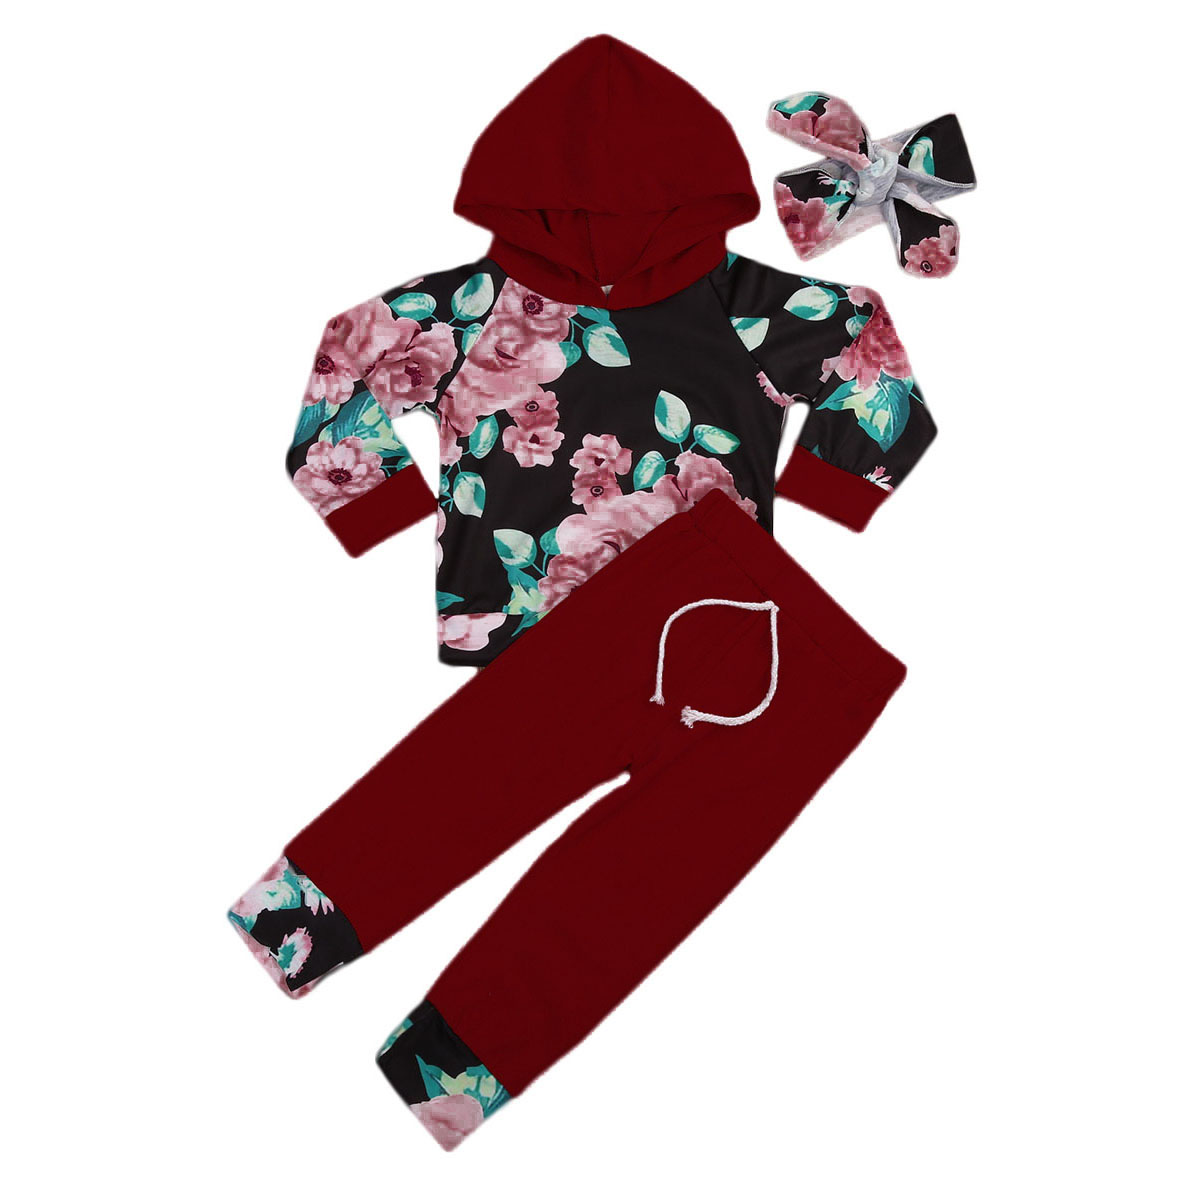 0-3Y Toddler Kids Baby Girl Clothing Autumn Long Sleeve Floral Hooded T-shirt Tops+Red Pant Heaband Outfits Children Clothes стоимость